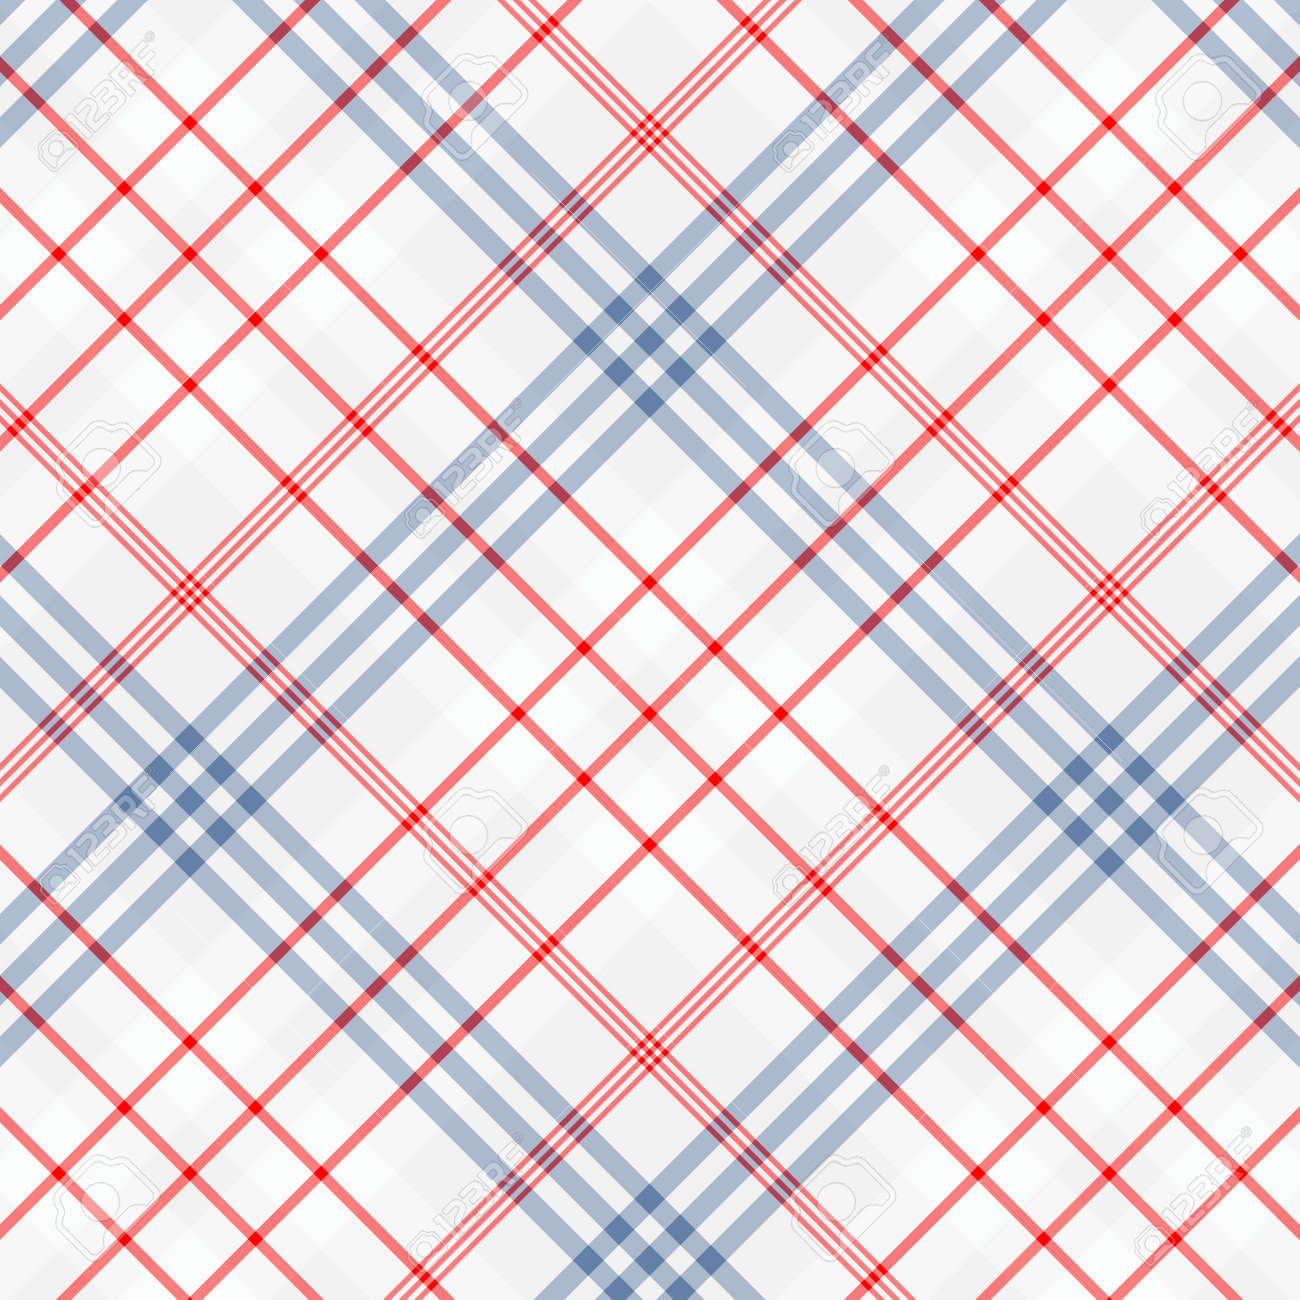 Tartan plaid pattern background. Texture for plaid, tablecloths, clothes, shirts, dresses, paper, bedding, blankets, quilts and other textile products. Vector illustration EPS 10 - 158348571